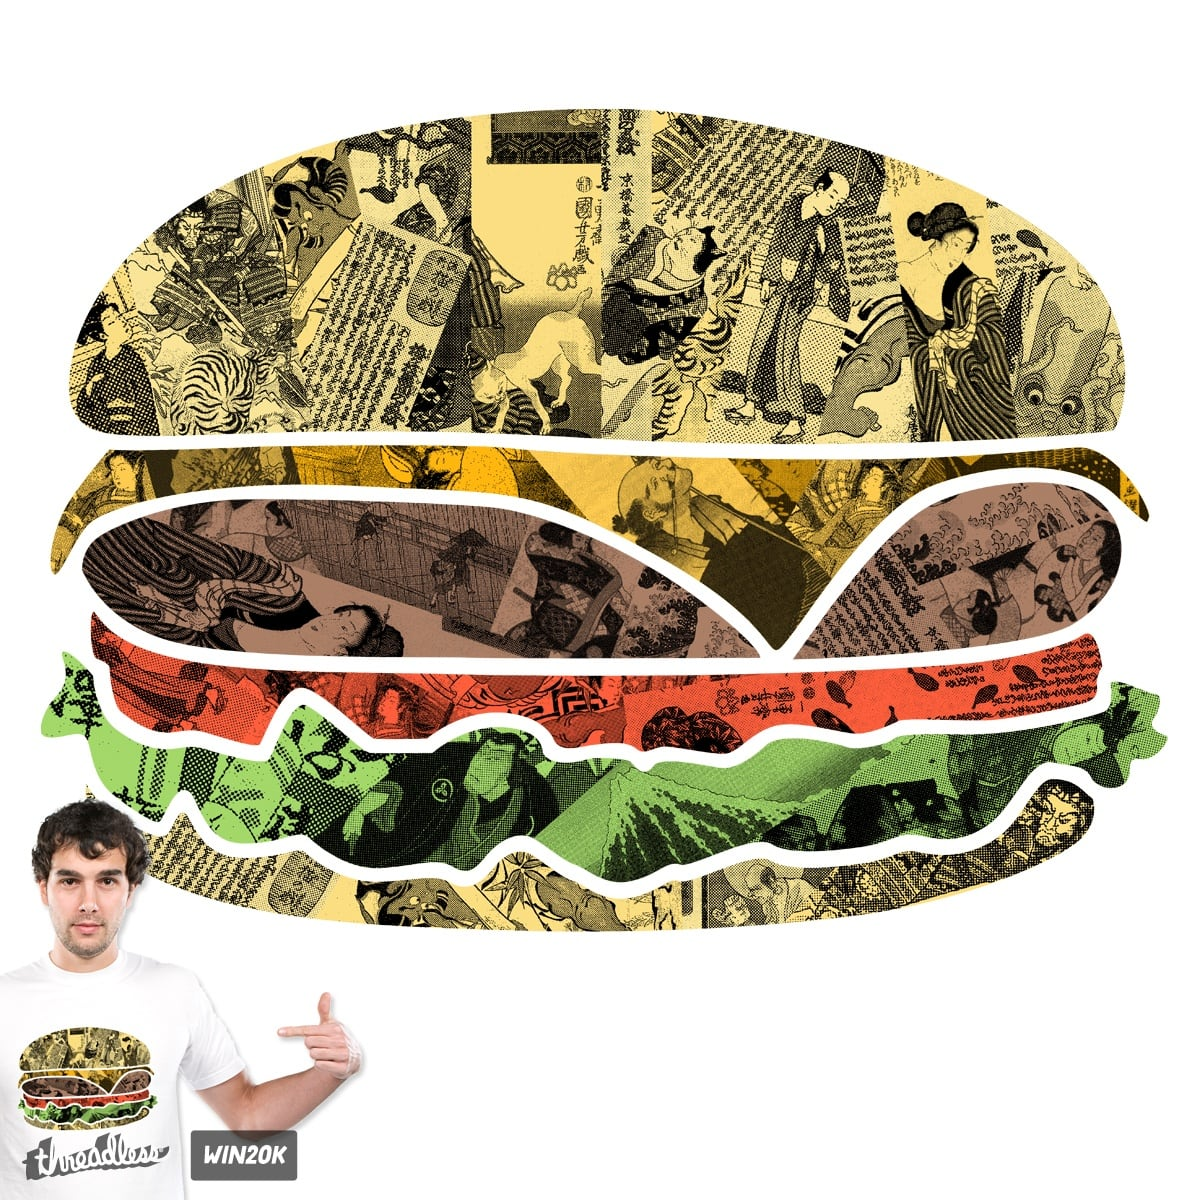 The Rising Burger by Goto75 on Threadless